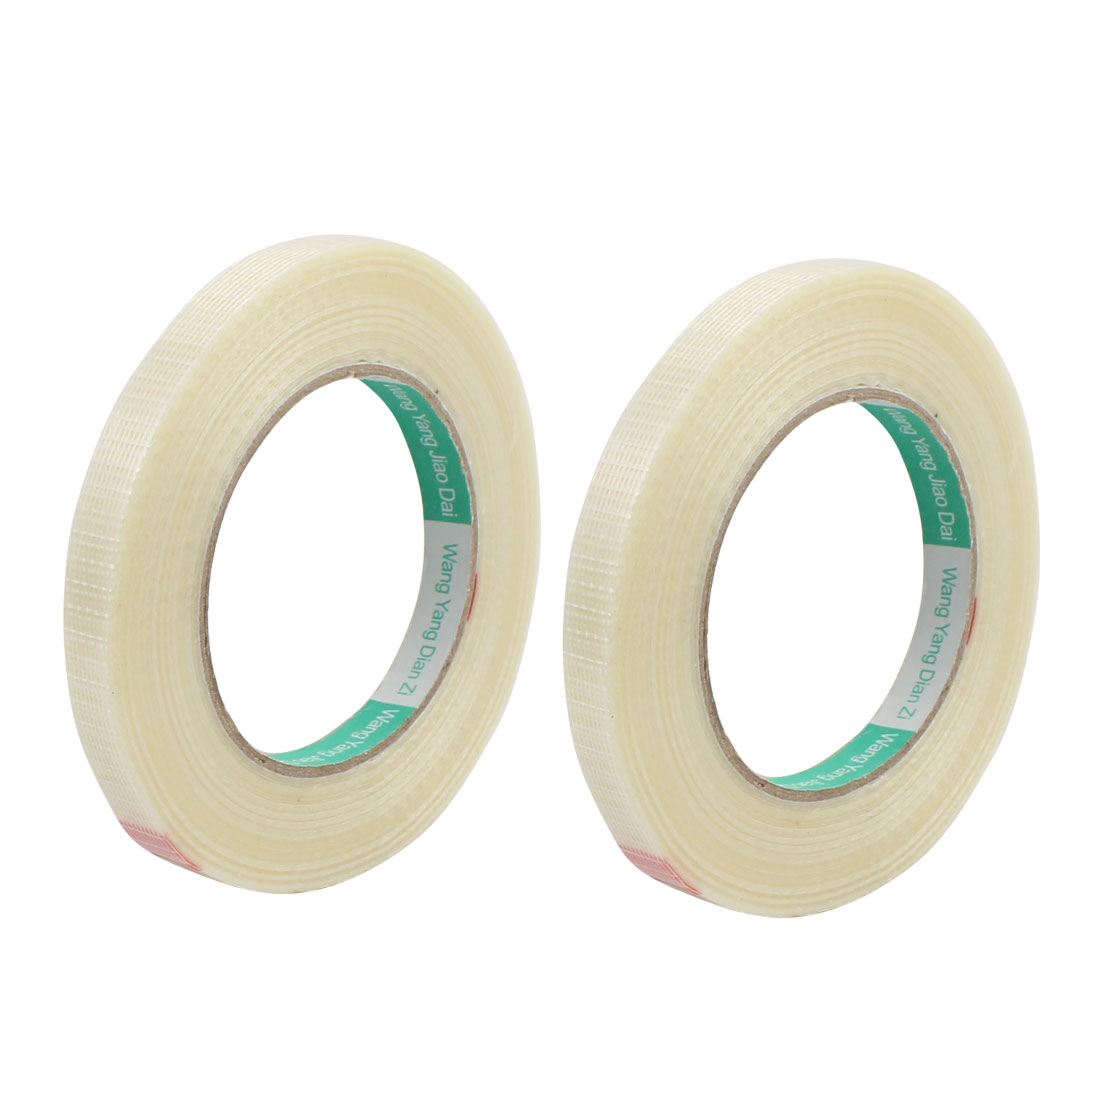 2pcs 12mm Height 50M Length Long Adhesive Insulating Grid Glass Fiber Tape Roll